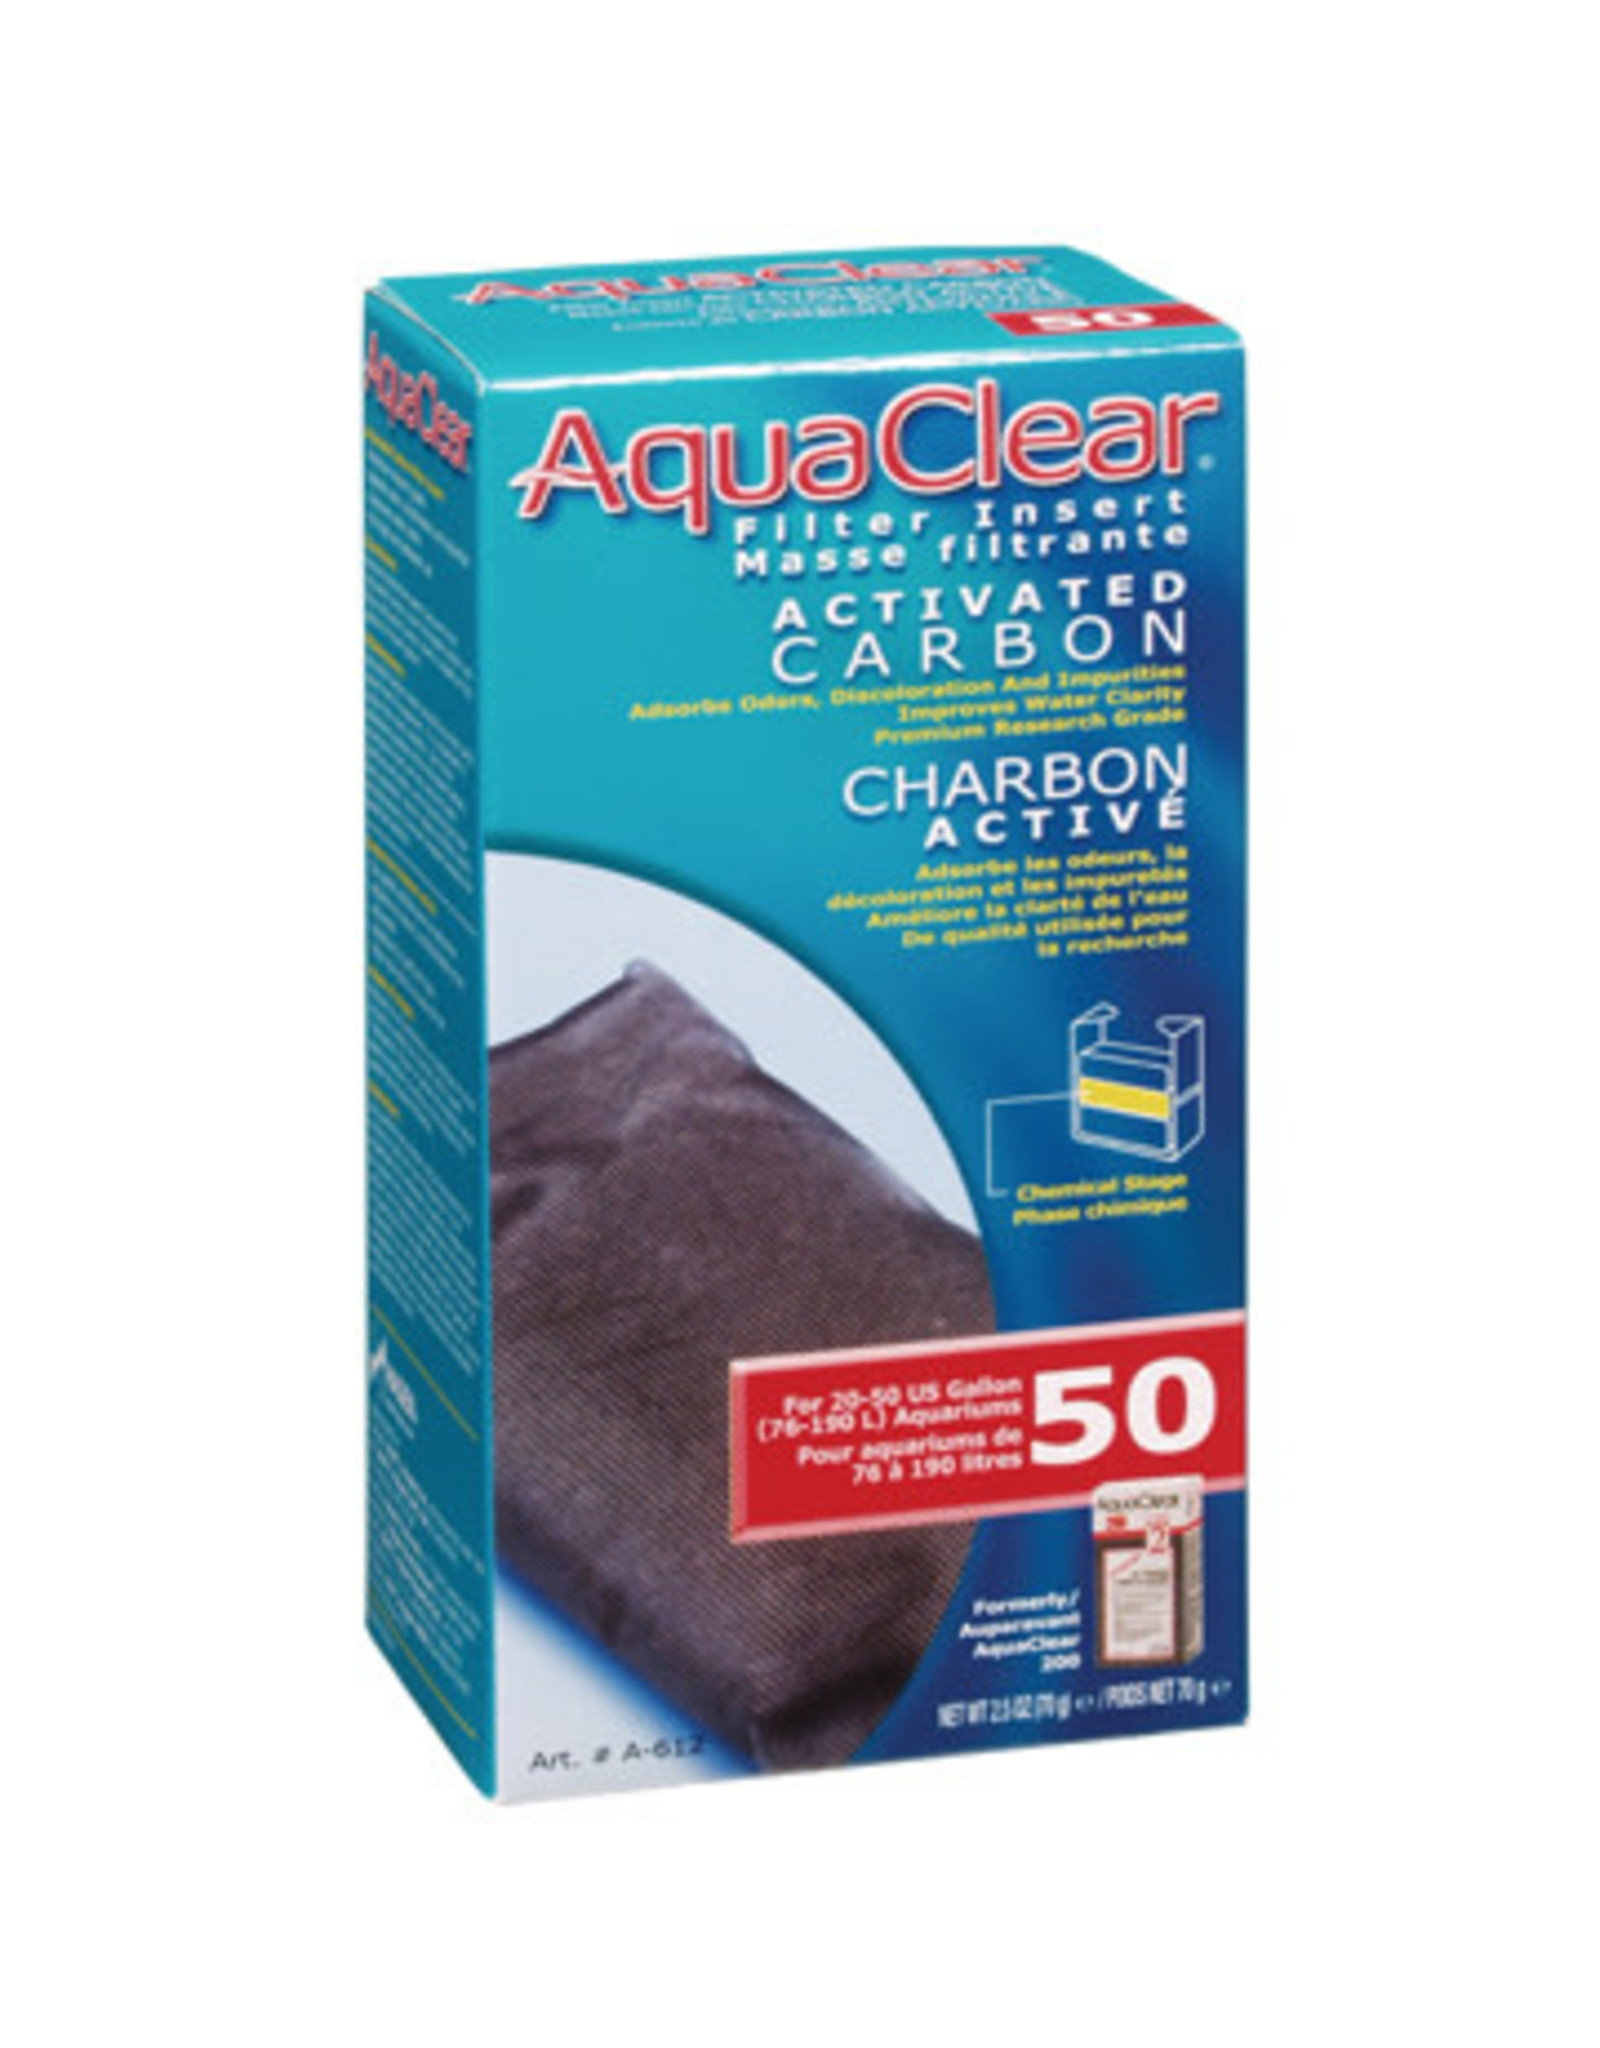 AquaClear AquaClear 50 Activated Carbon Filter Insert 70g